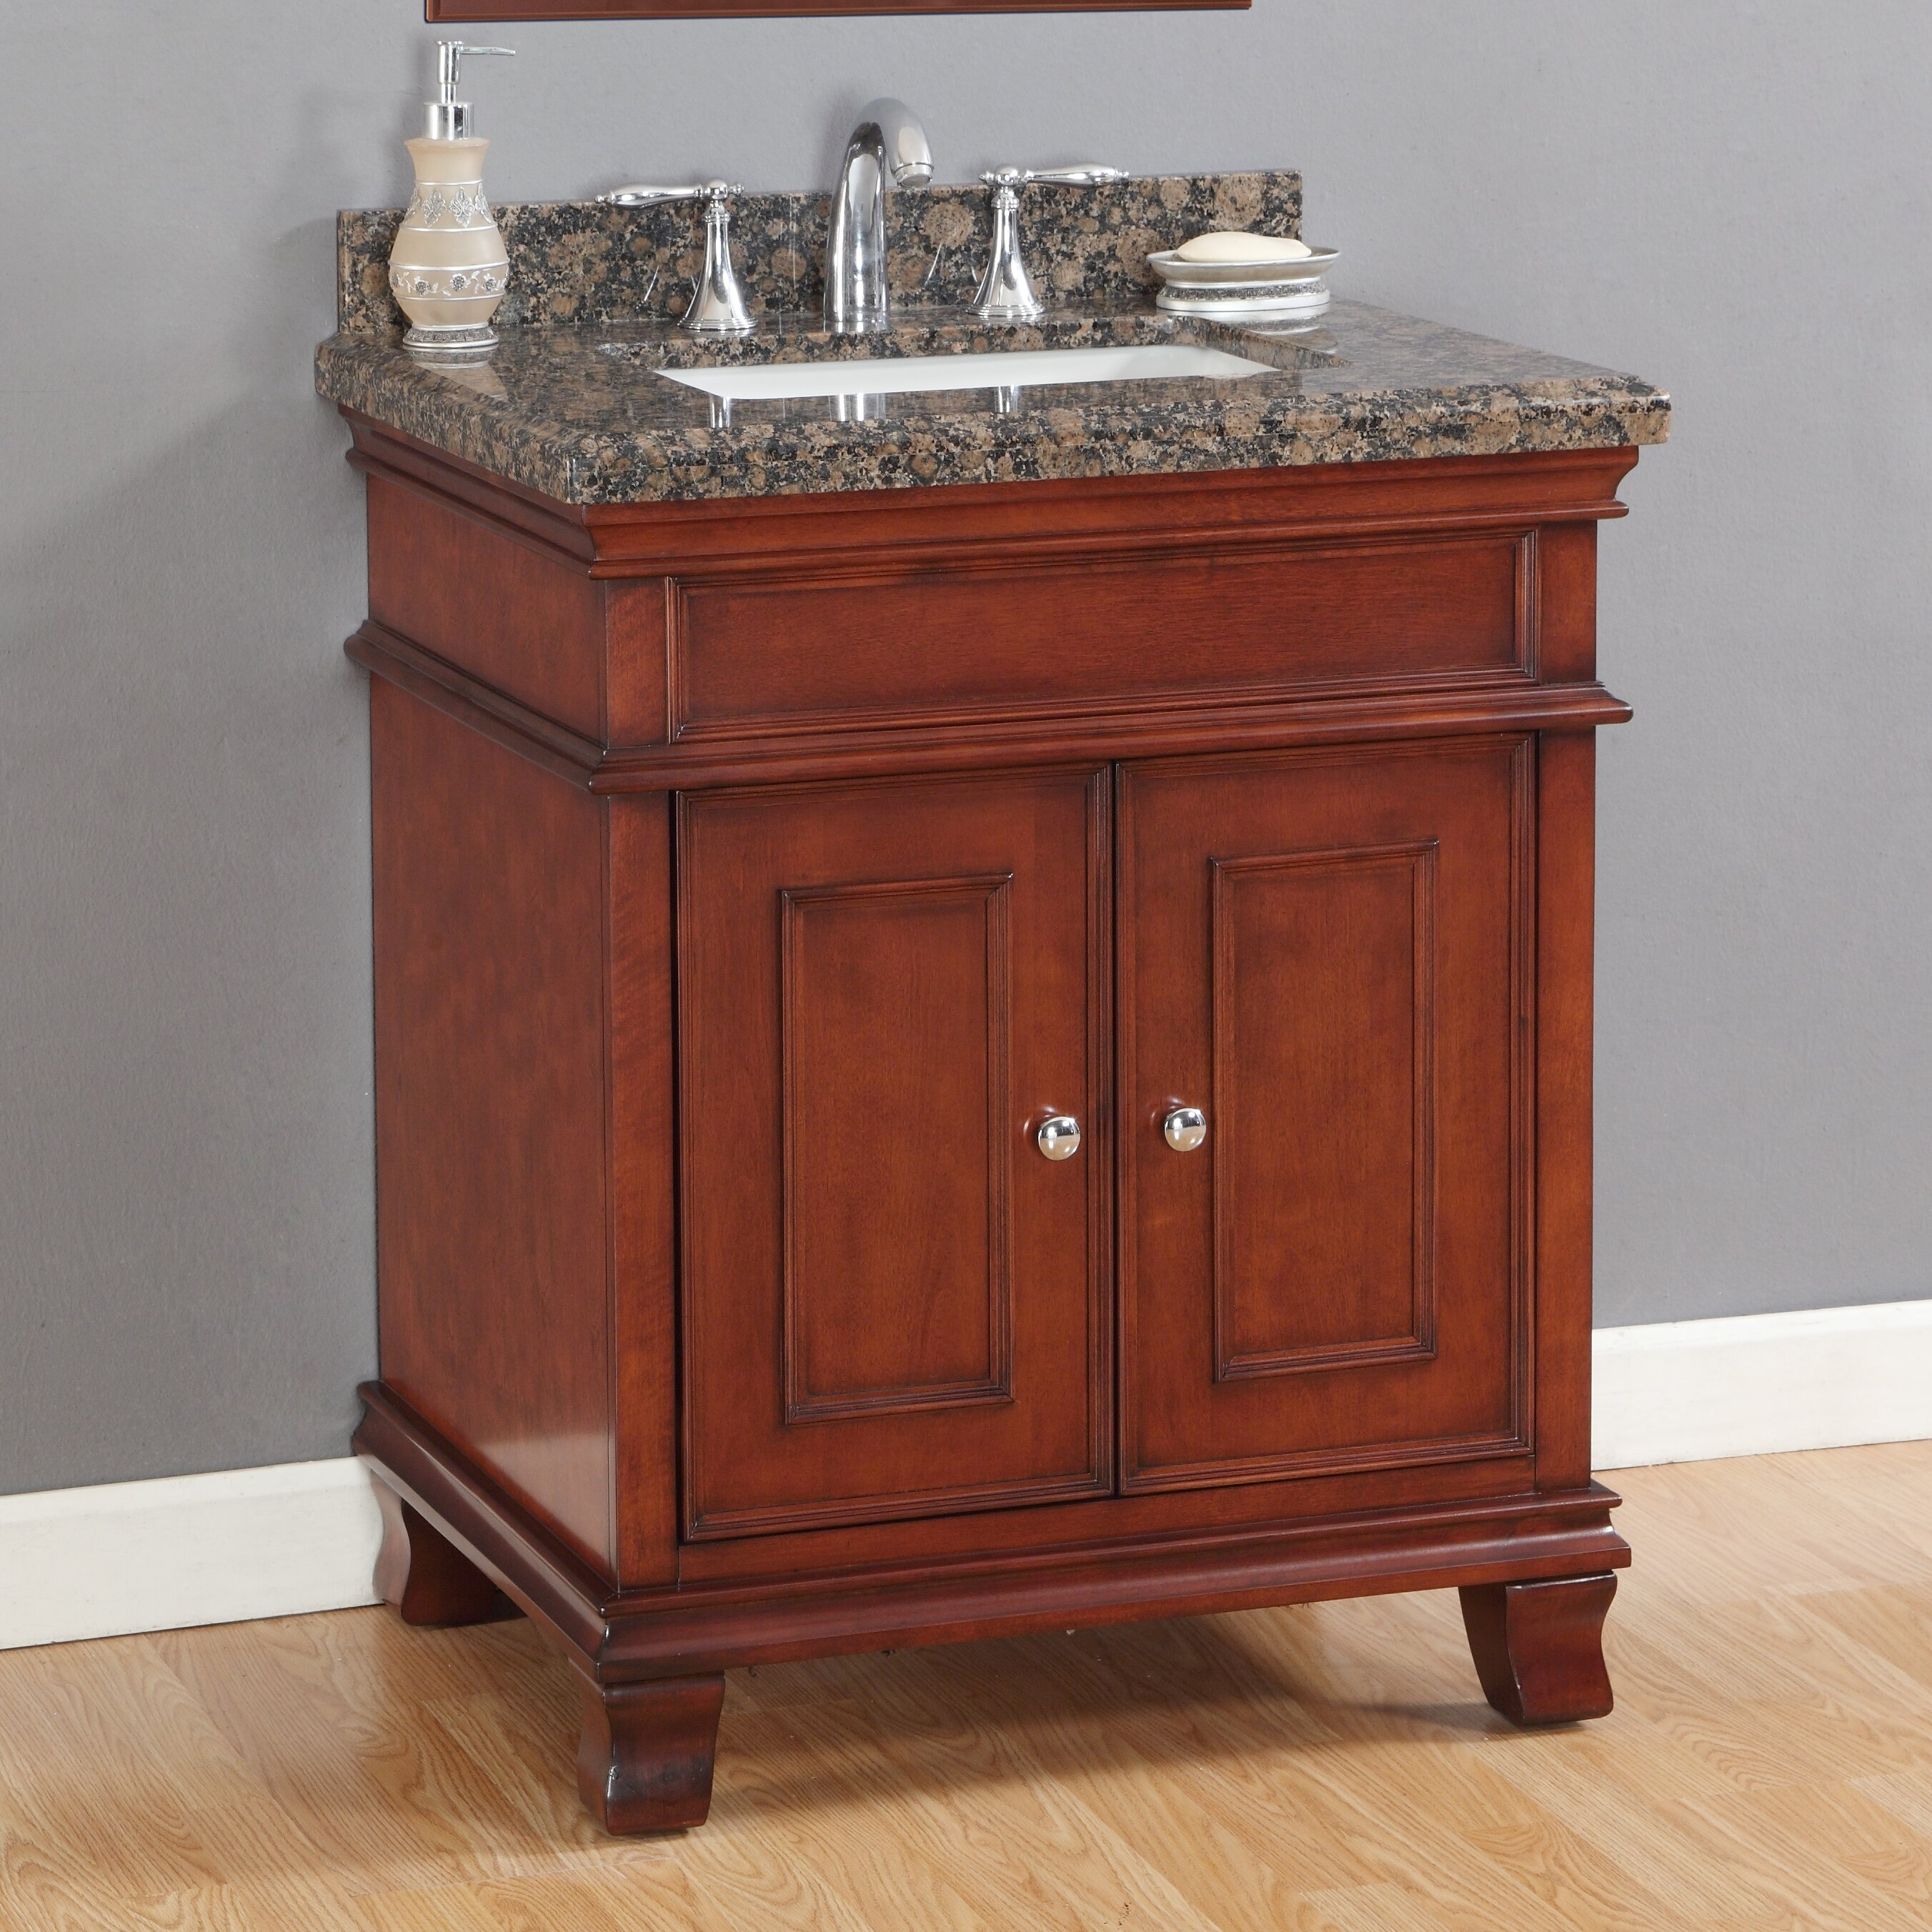 Mission hills rutherford 33 quot single vanity set amp reviews wayfair - Mission Hills Rutherford 33 Quot Single Vanity Set Amp Reviews Wayfair 2